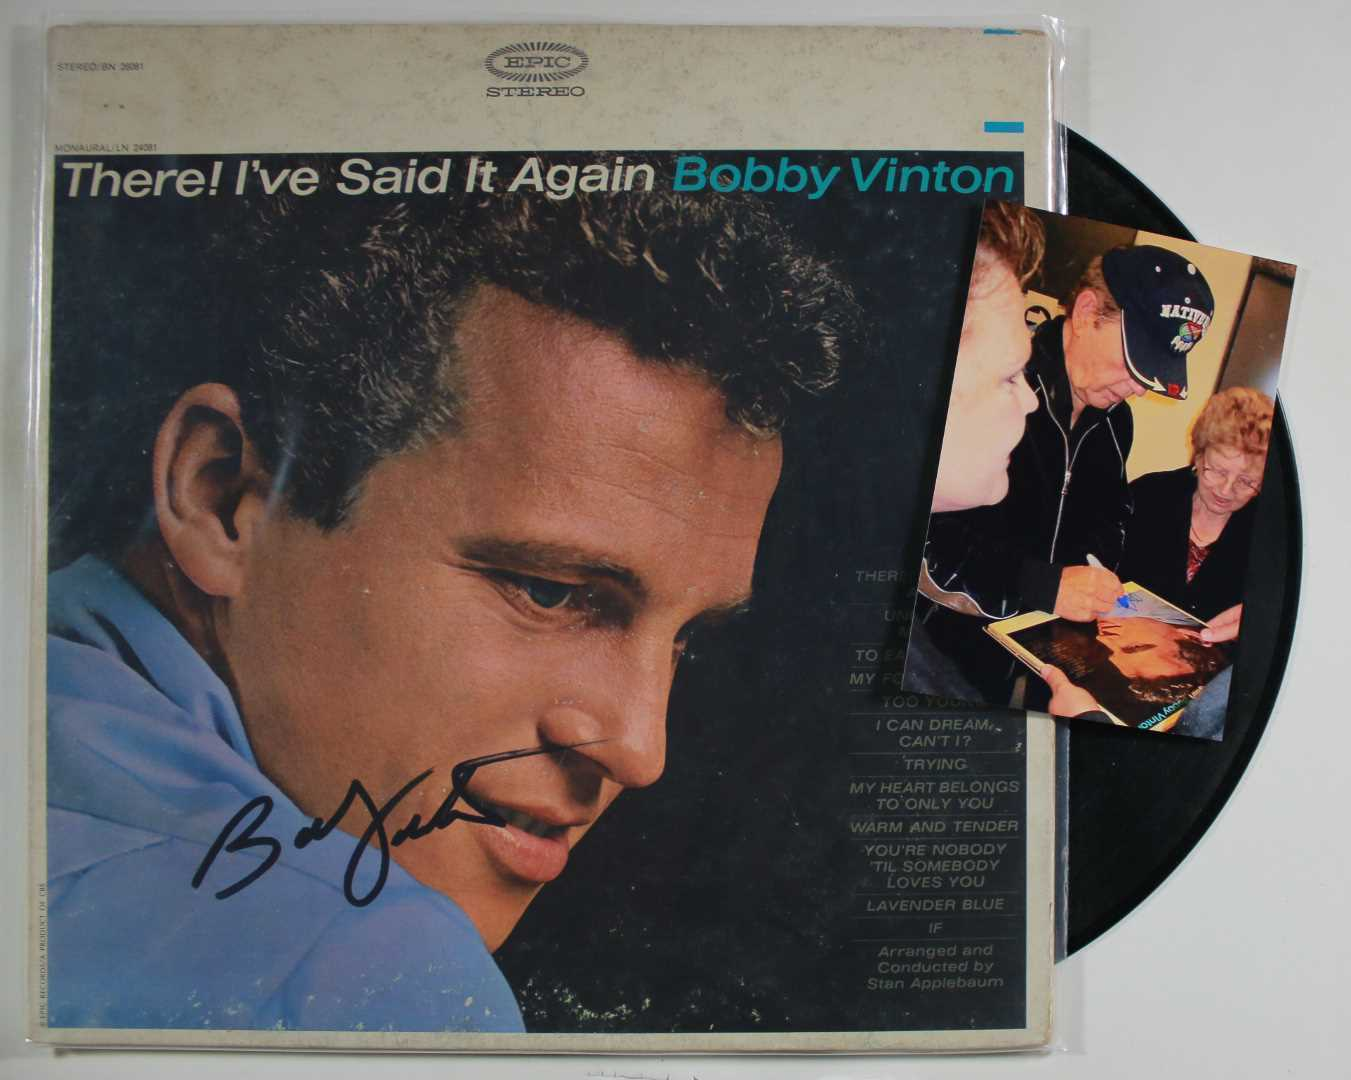 Primary image for Bobby Vinton Signed Autographed Record Album w/ Signing Photo